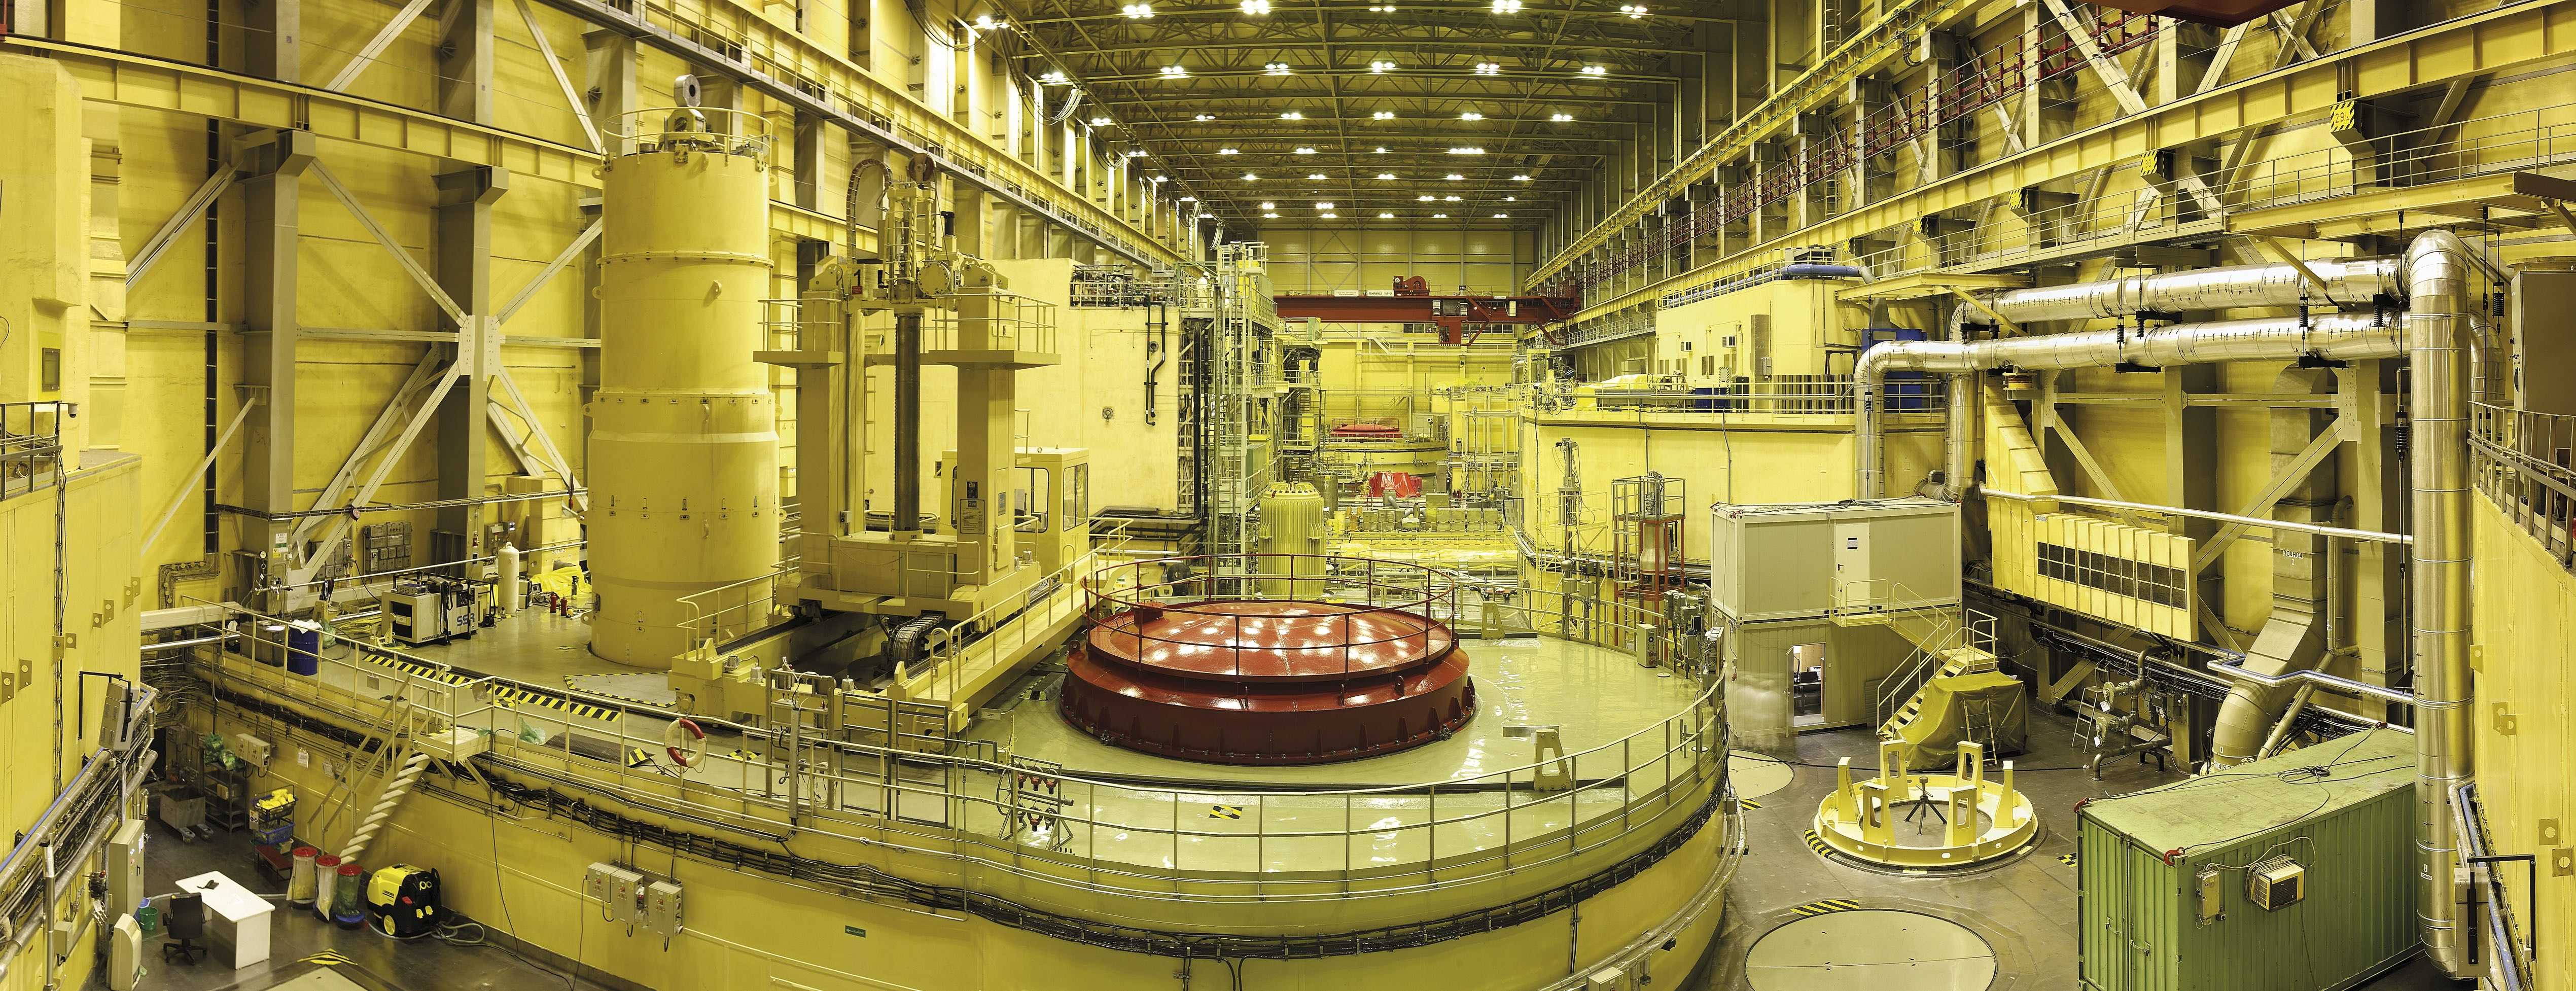 The new modification of Russian VVER-440 fuel loaded at Paks NPP in Hungary